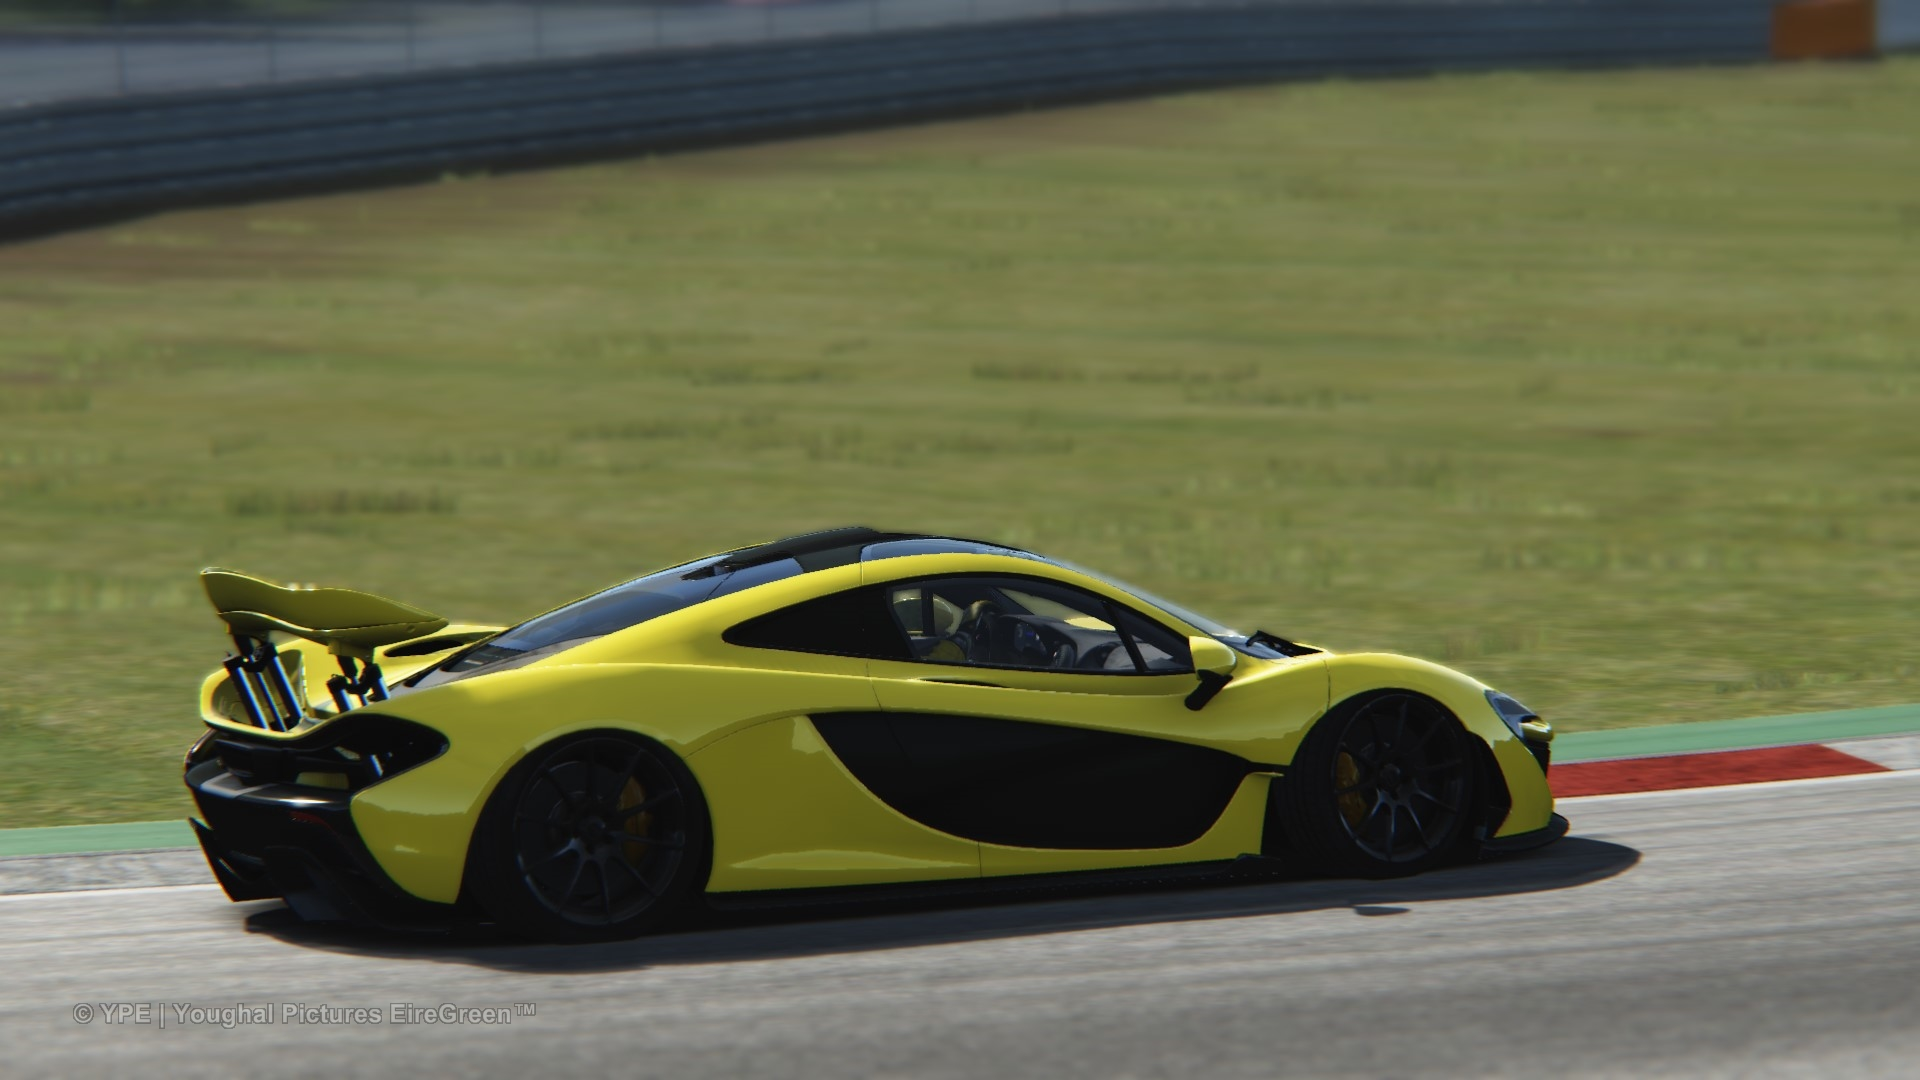 Screenshot_ks_mclaren_p1_nurburgring-sprint_19-7-115-8-4-29.jpg